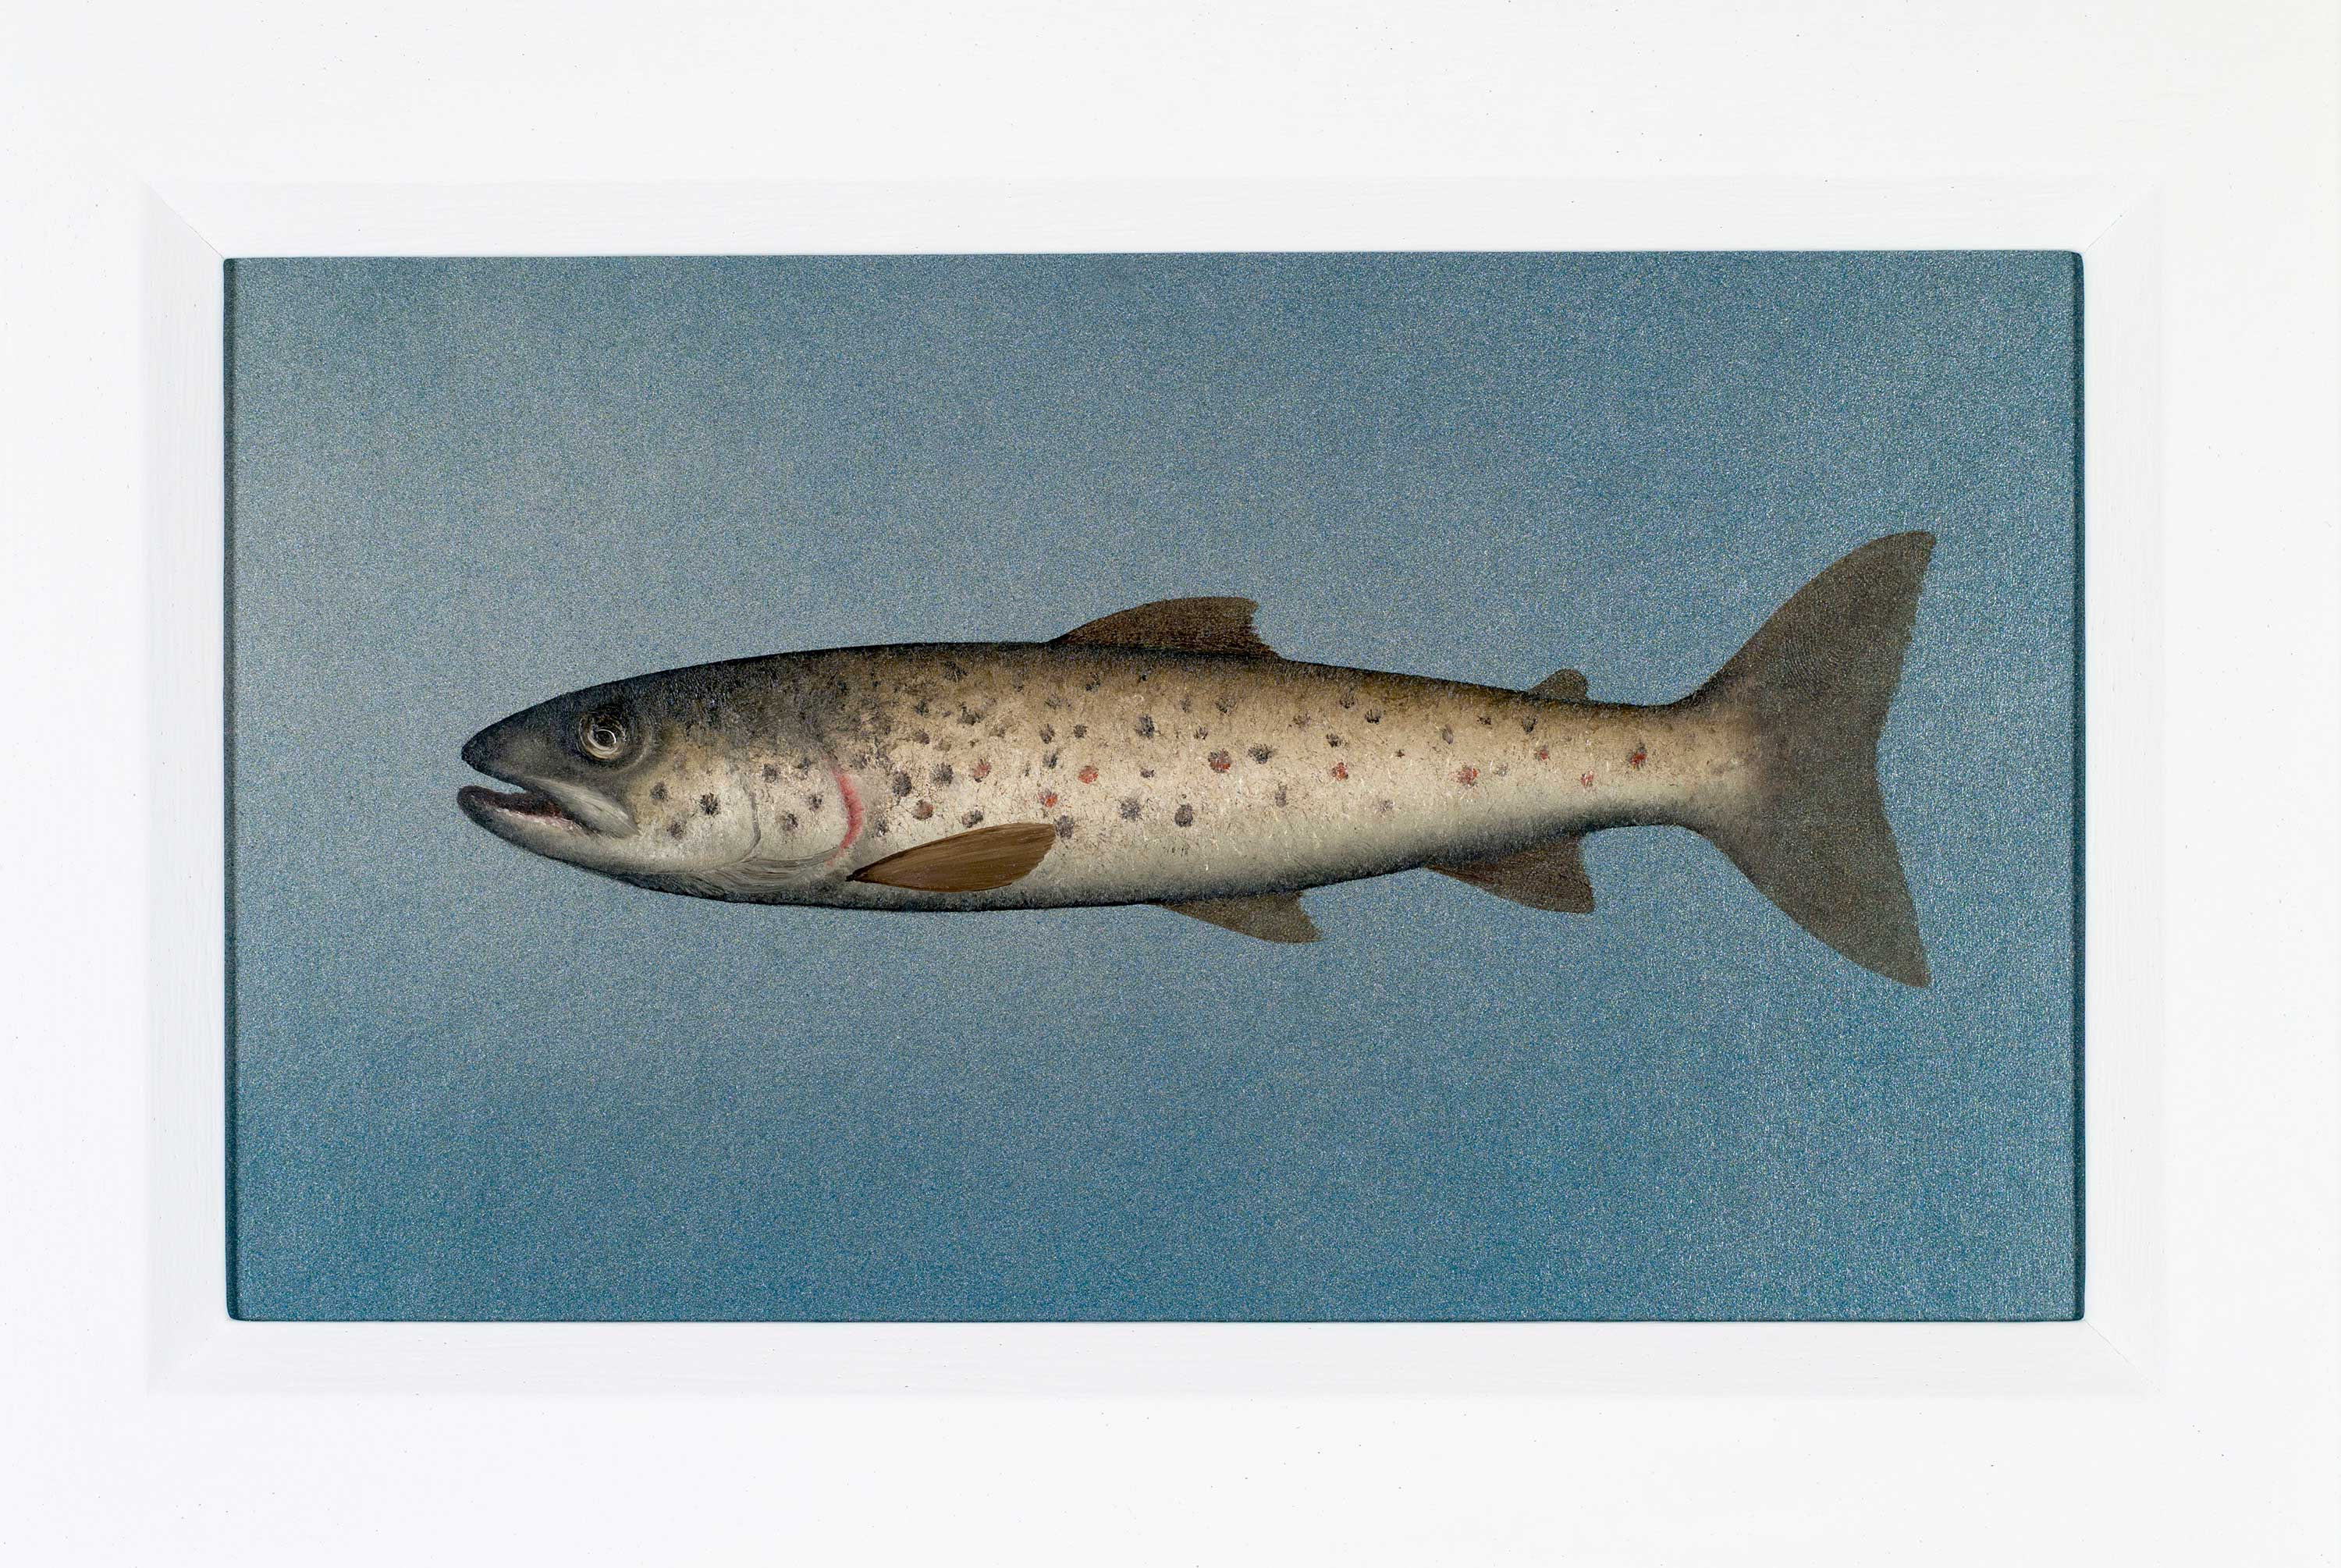 Donald Provan Small Brown Trout